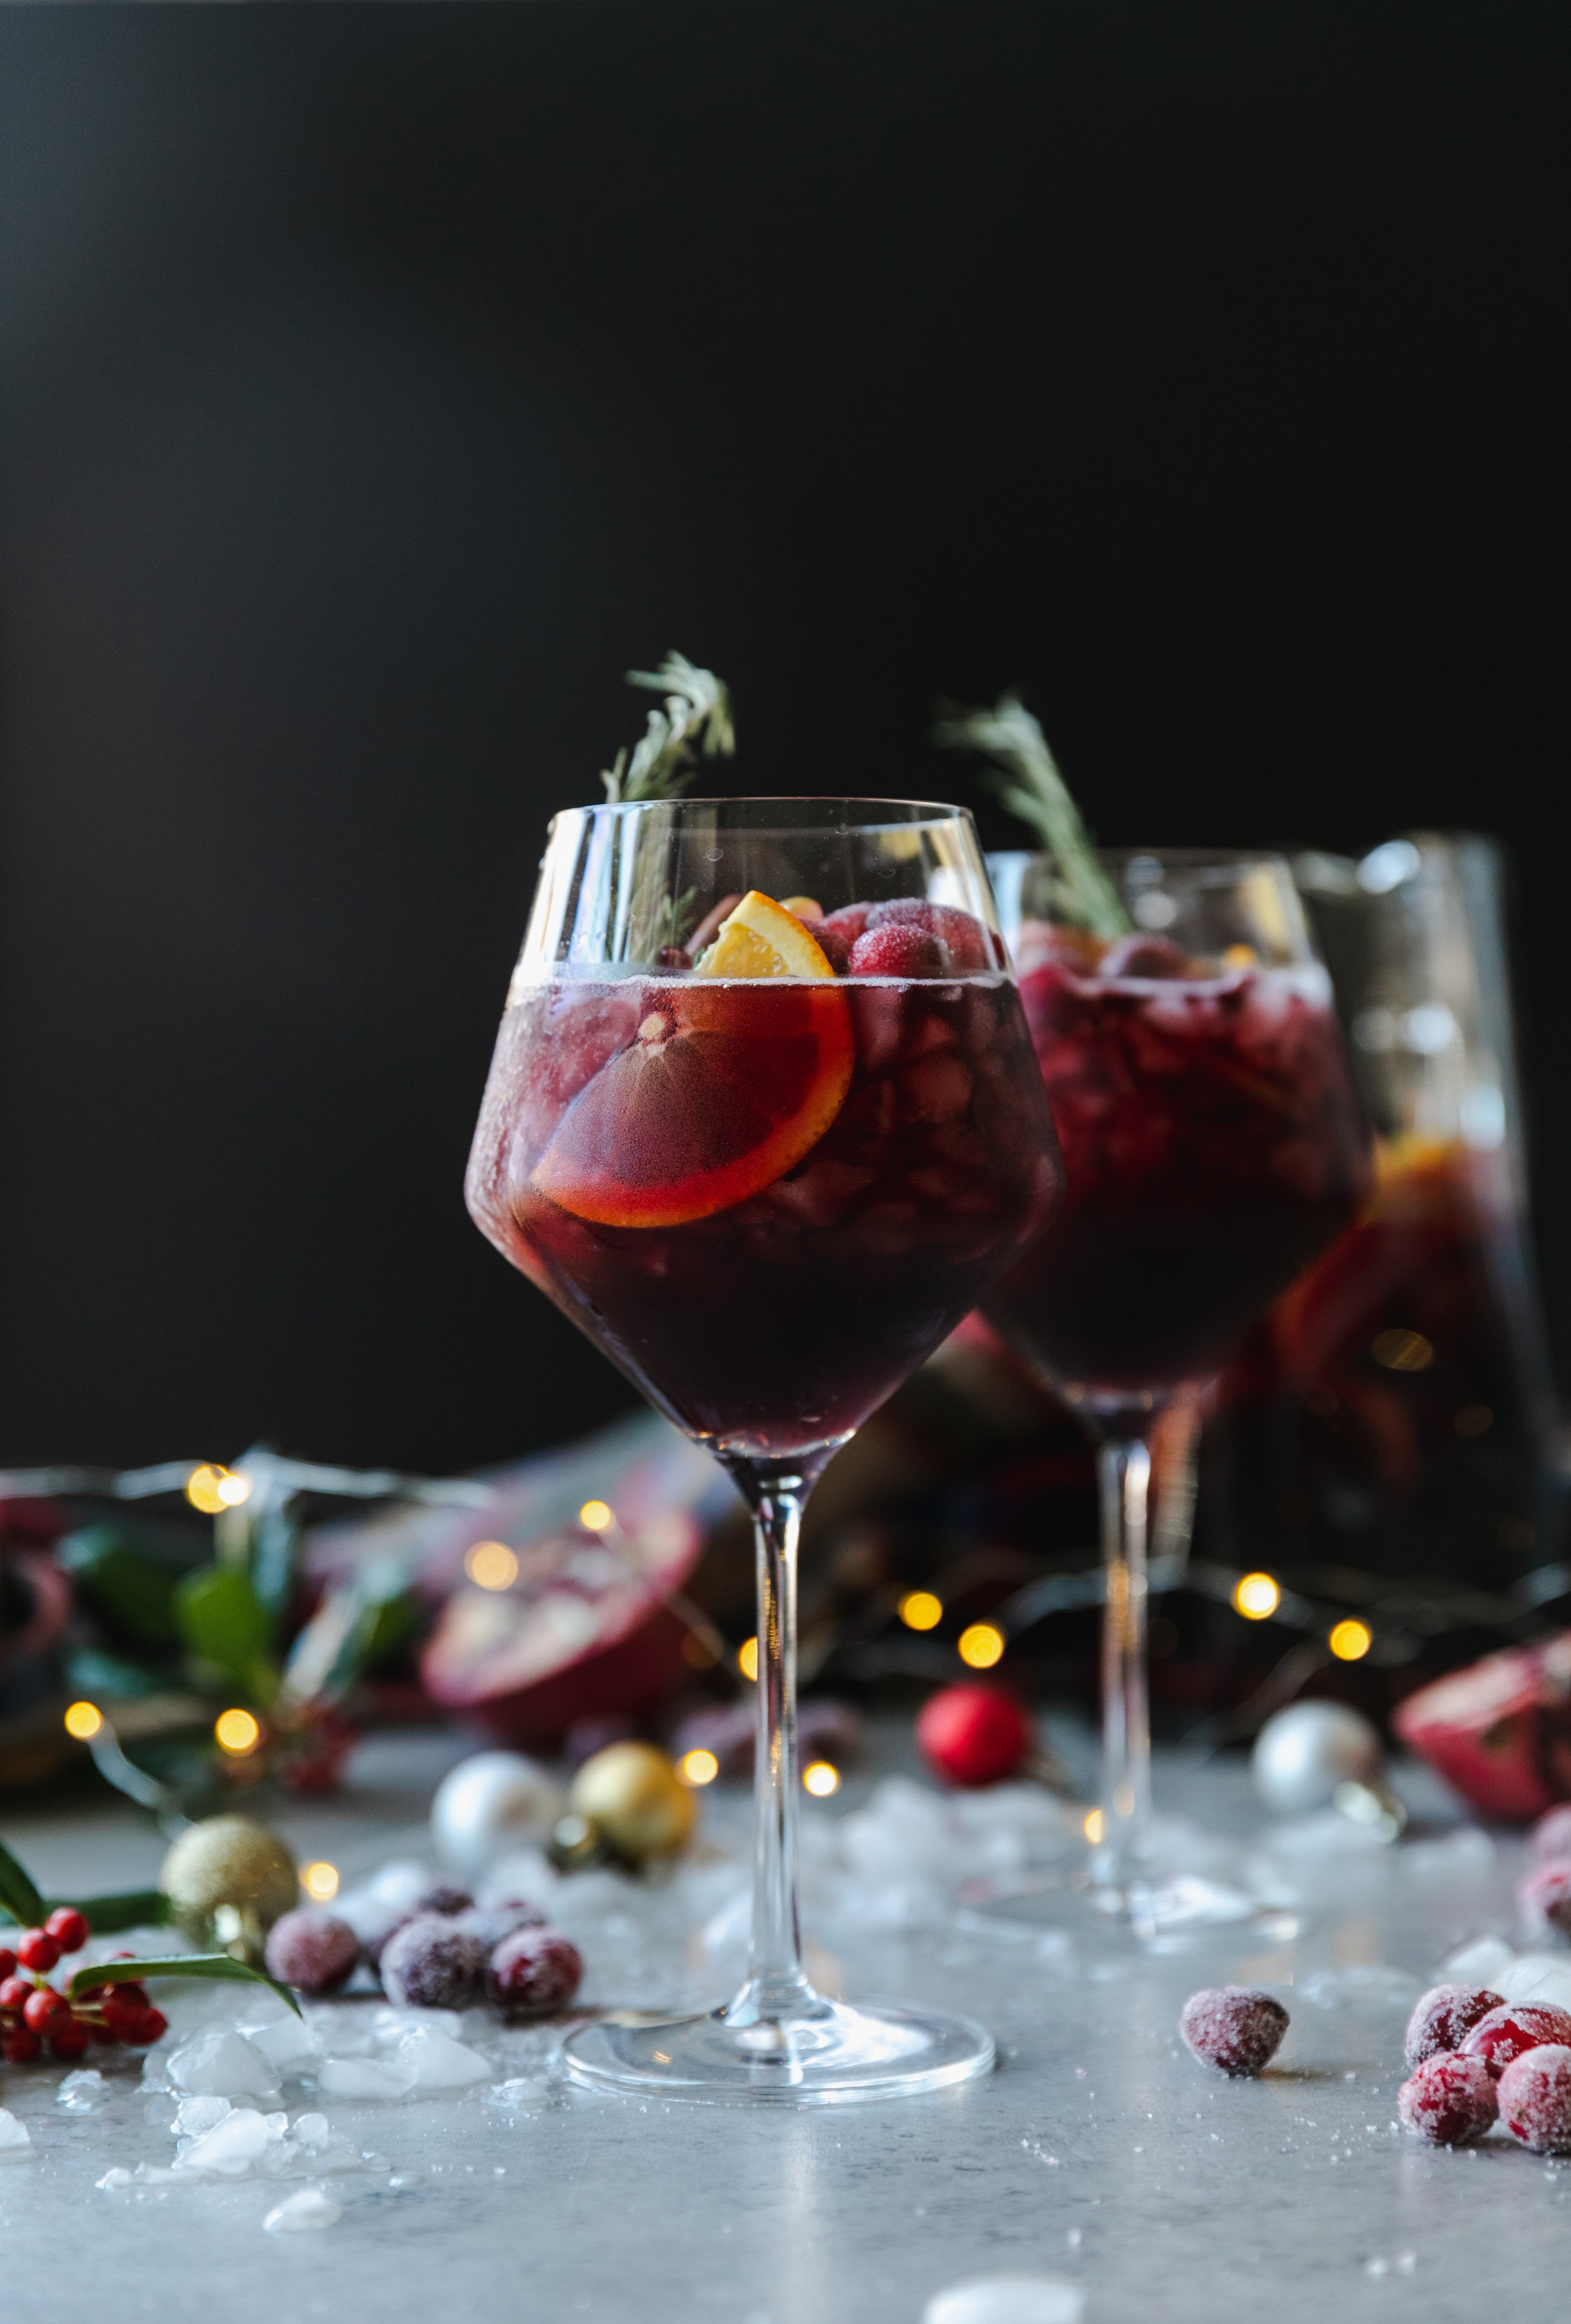 Forward facing shot of a wine glass filled with red sangria, garnished with a rosemary sprig, with another glass behind it, with crushed ice, christmas ornaments, a plaid scarf, a pitcher of sangria, and twinkle lights in the background